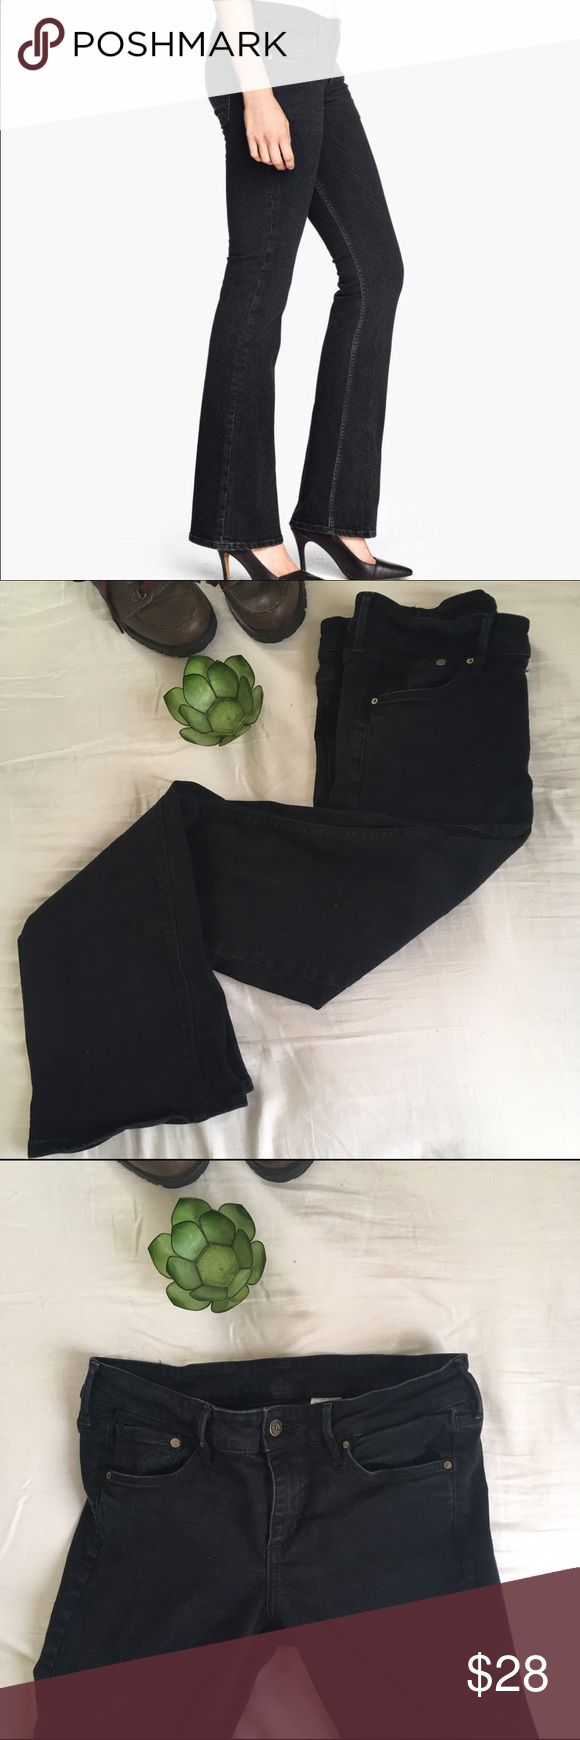 """Bootcut Low Waist Jeans Love these jeans!!//5-pocket//washed stretch Denim with low rise waist//99% cotton//measurement of hips @ 33""""//inseam @ 30""""//these are extremely flattering and have stretch to them to hug your form//super sexy H&M Pants Boot Cut & Flare"""